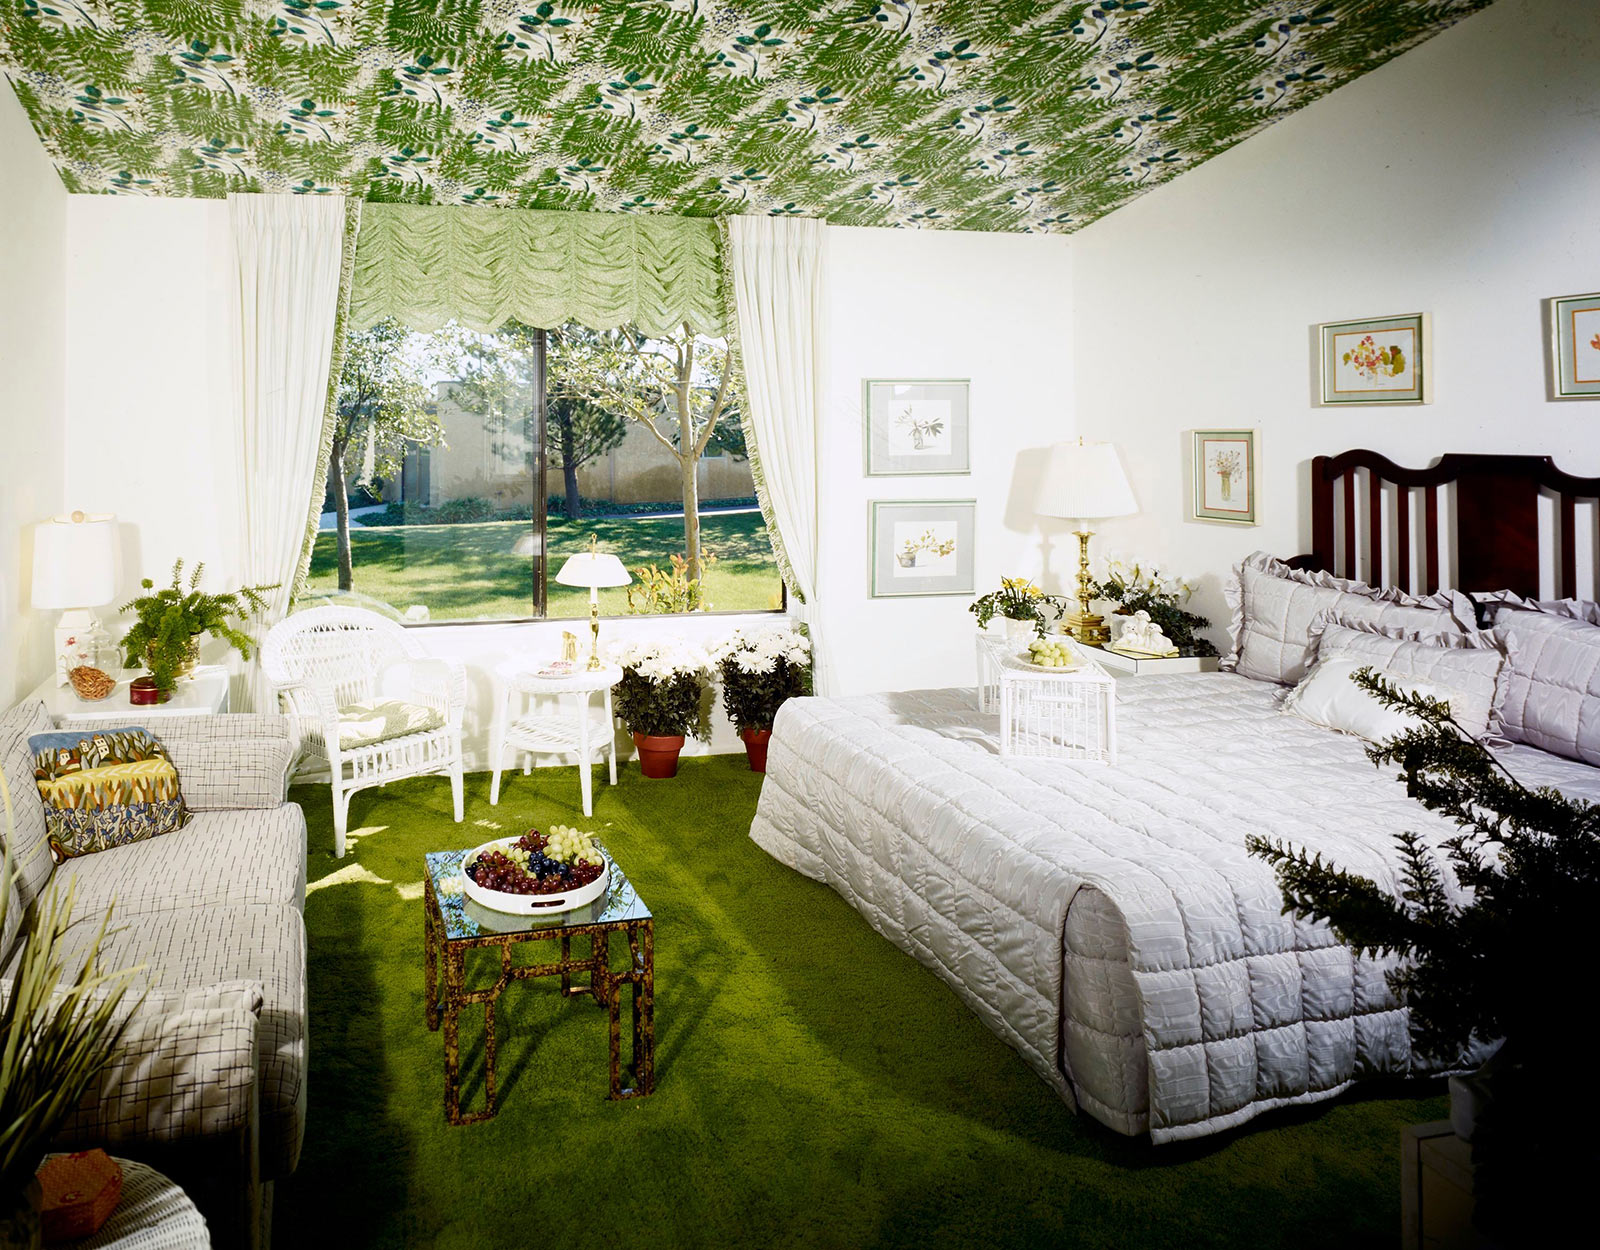 Bedroom with white and gray linens and accents, grass green carpet, and green leaf patterned ceiling